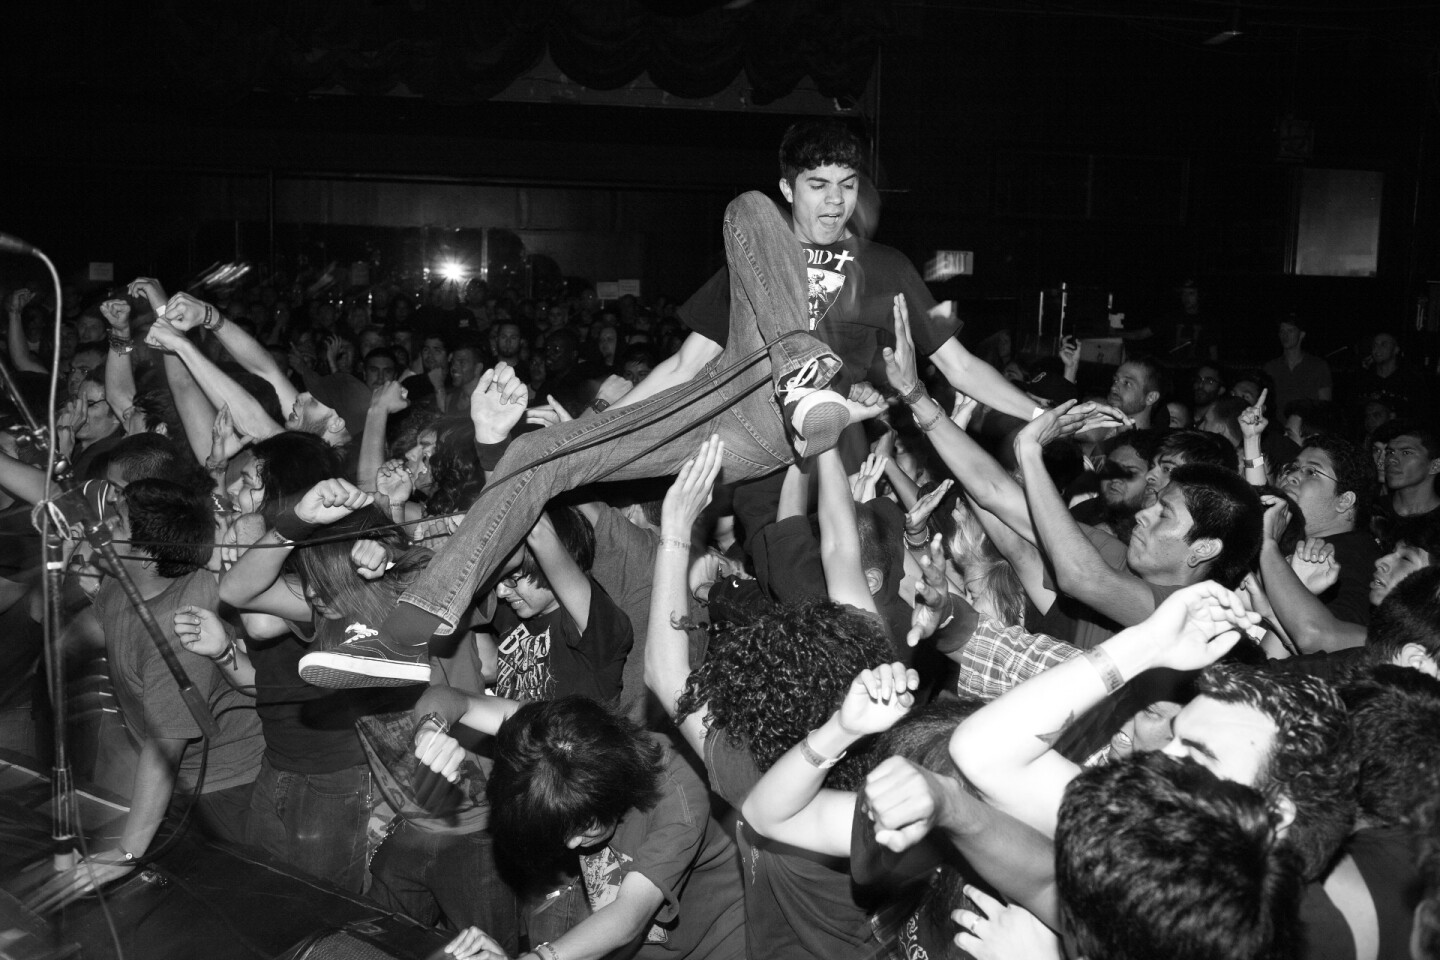 Gregory Bojorquez, Rocking Out At The Roxy, Sunset Strip, 2010, archival pigment print . Courtesy of the artist.